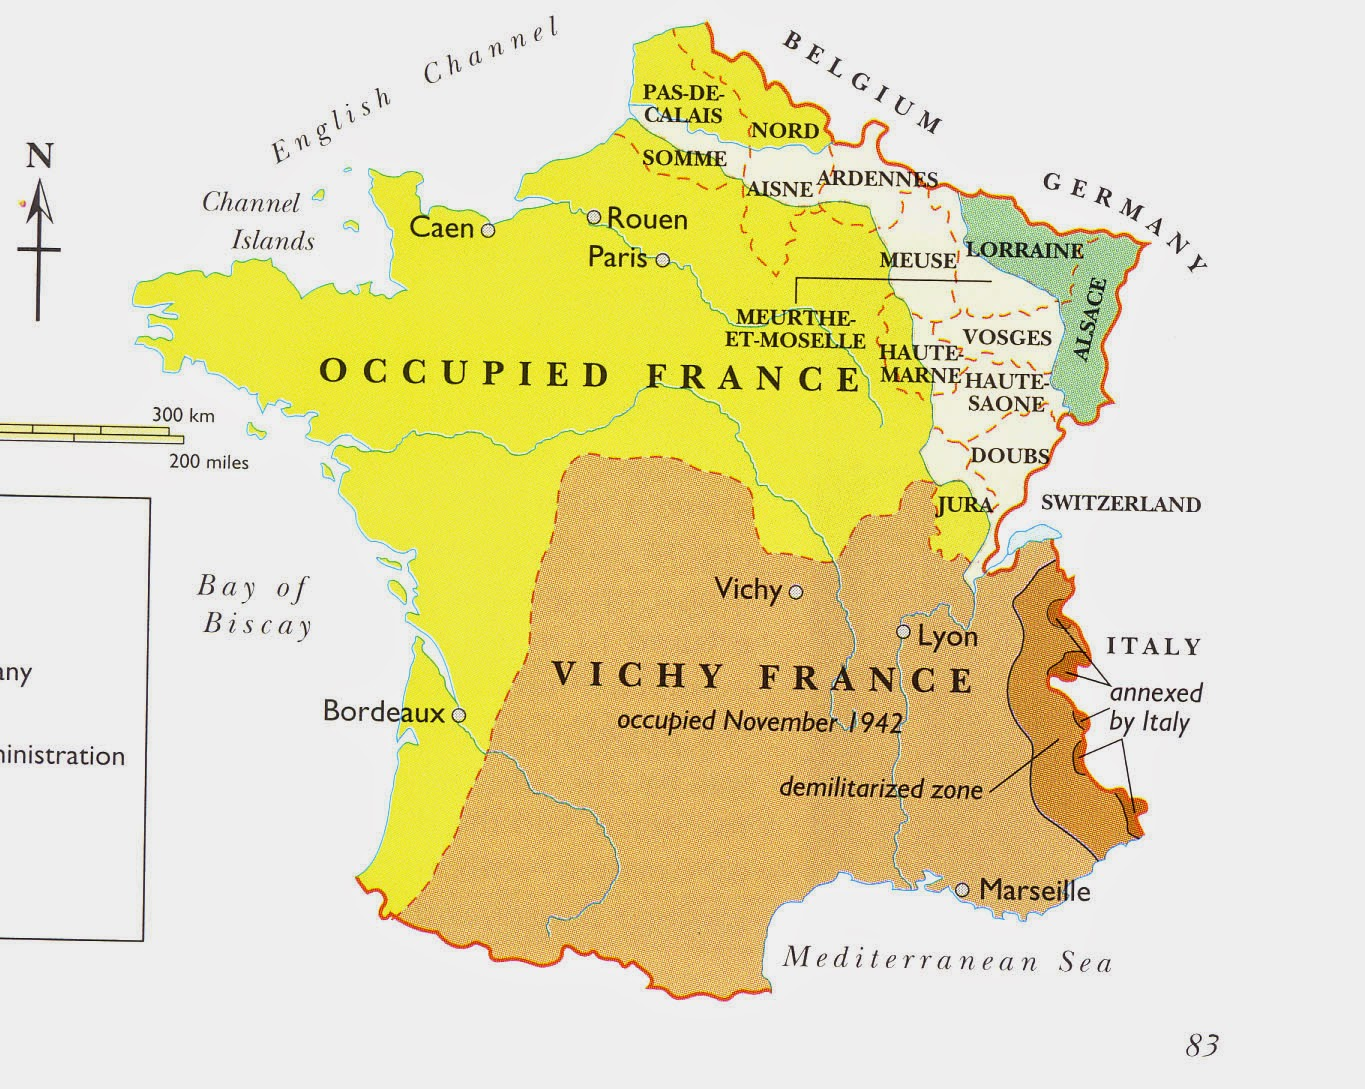 Map Of France During World War Ii.World War Ii In The Words Of My Uncle 05 31 18